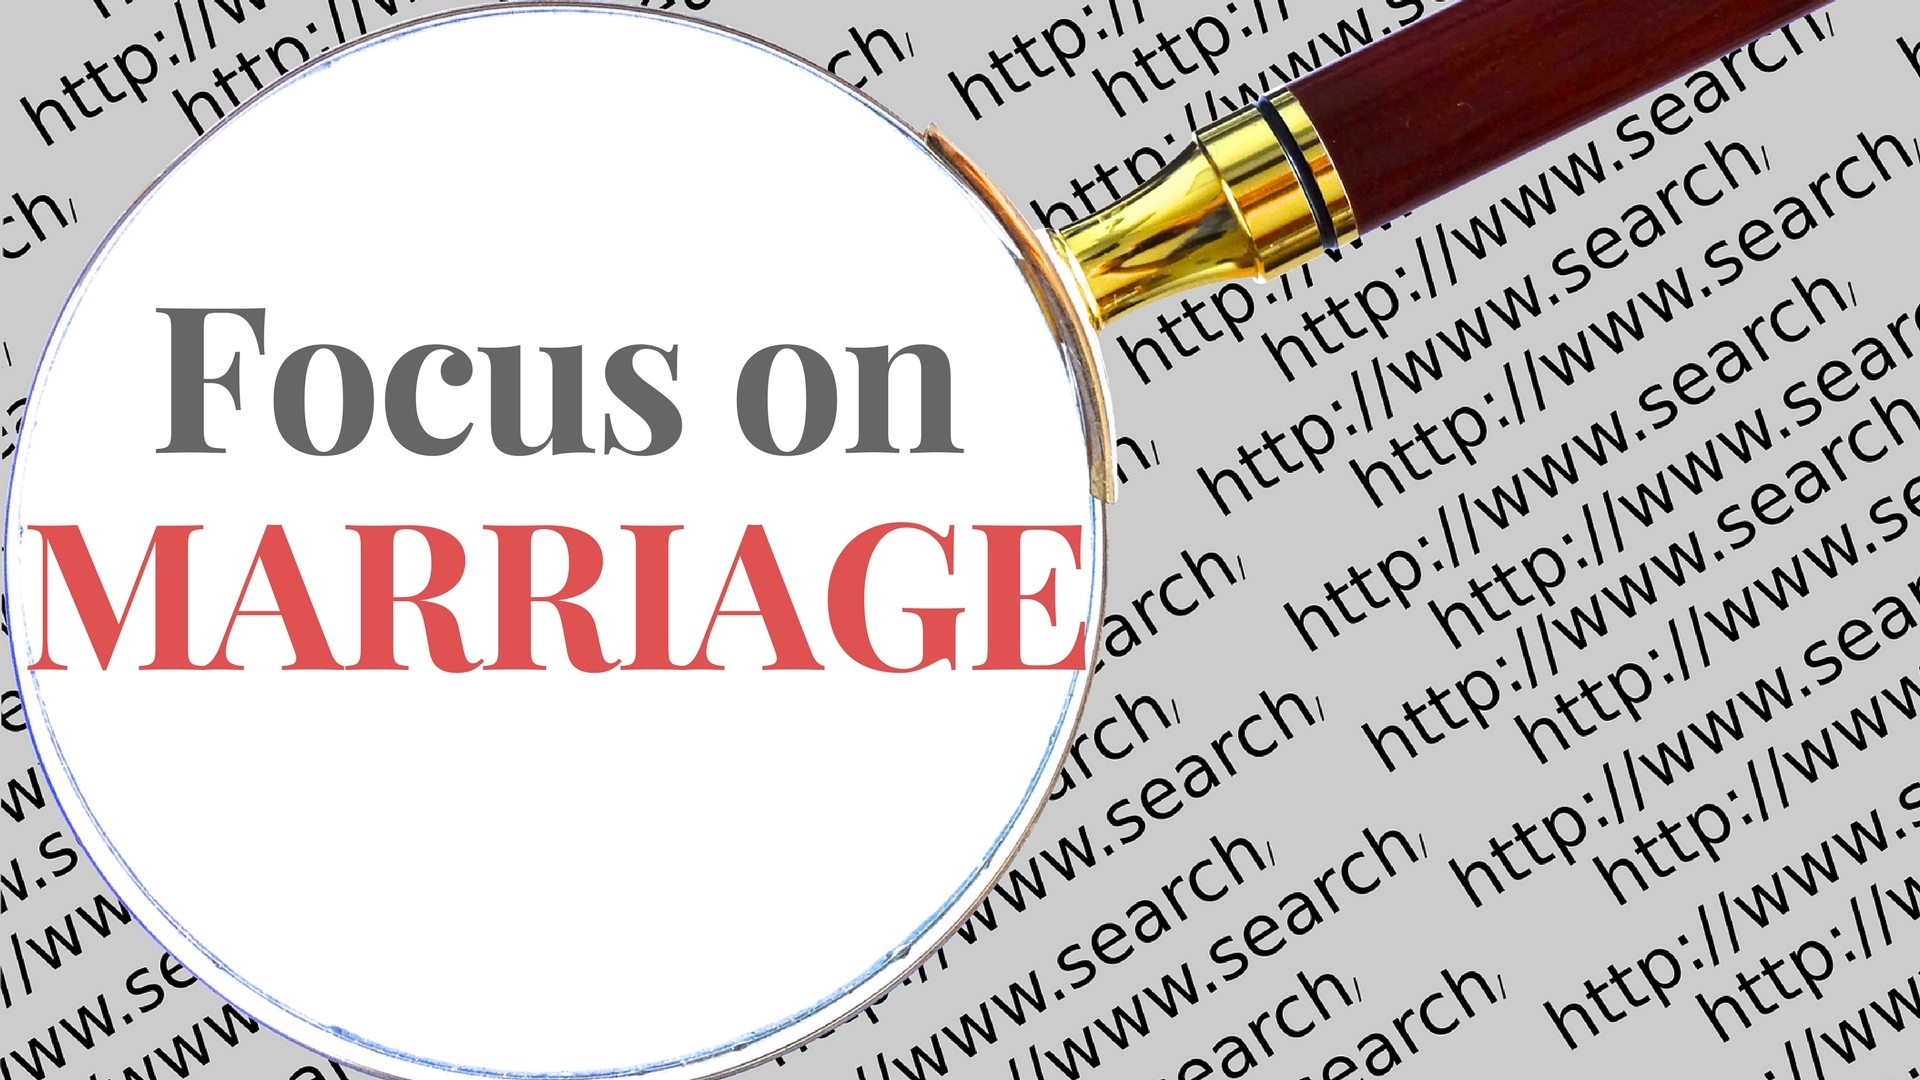 Focus on MARRIAGE - Pixabay - Canva